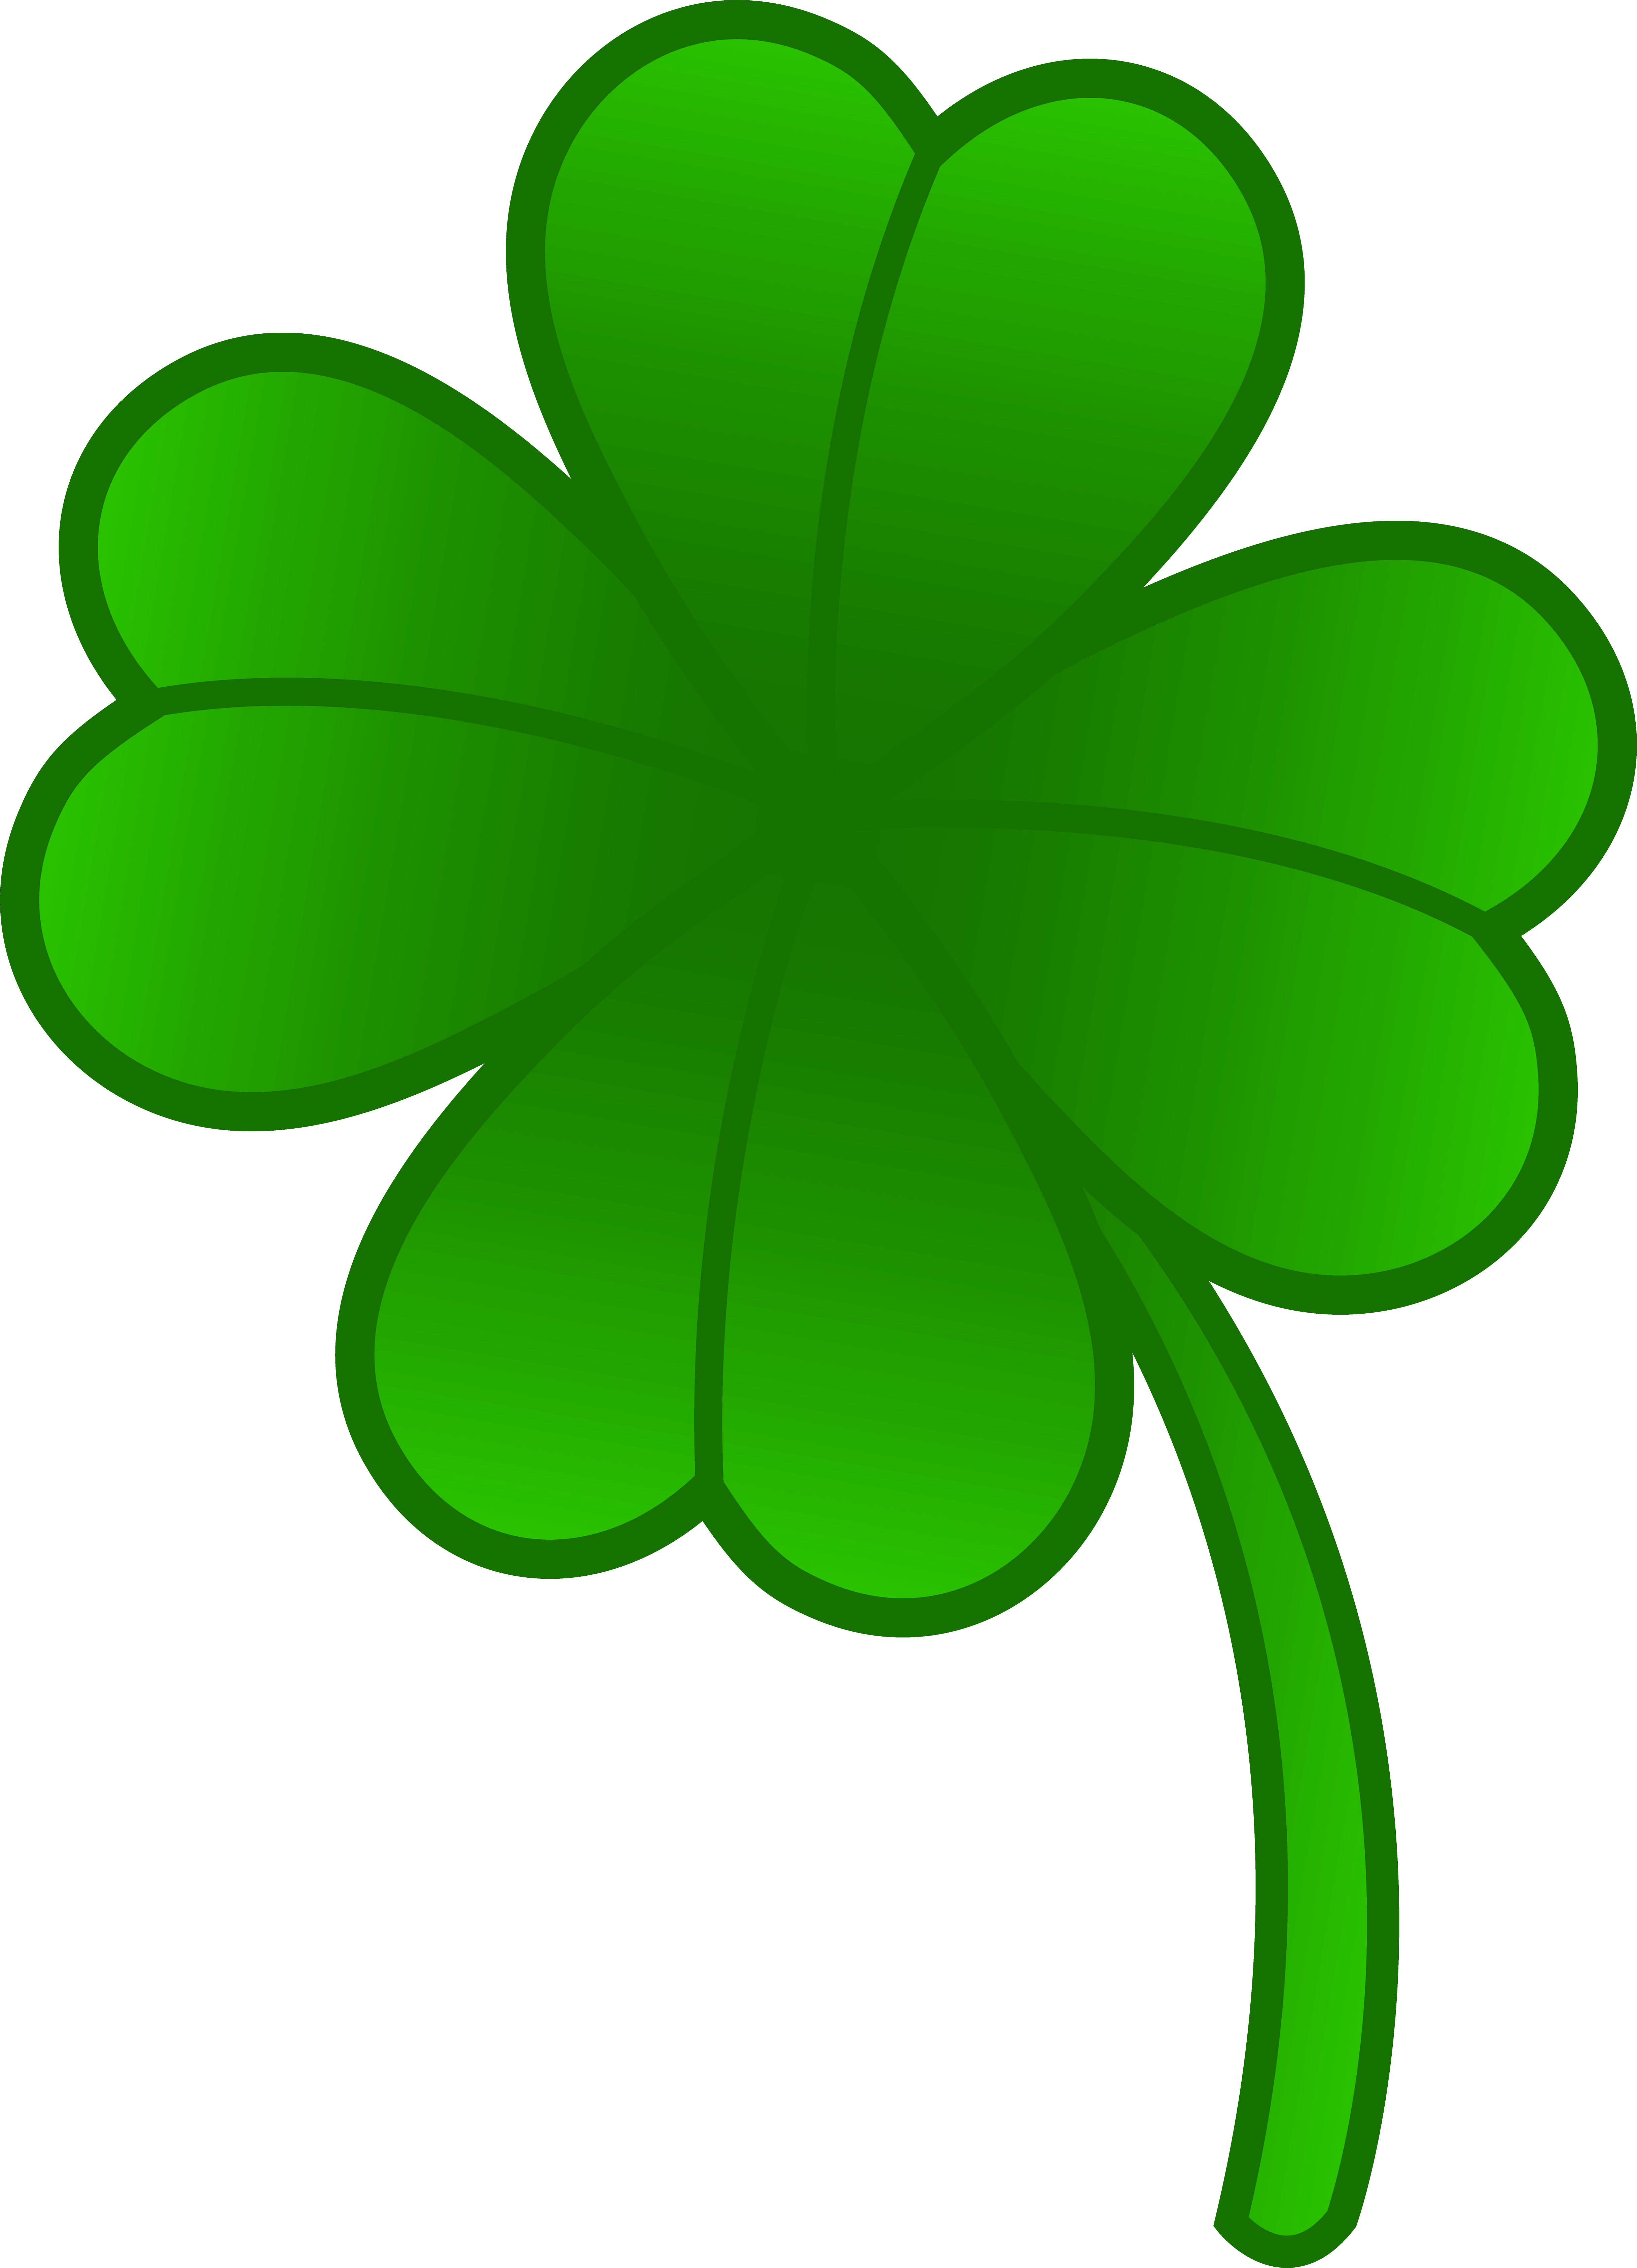 4 Leaf Clover Art - Cliparts.co